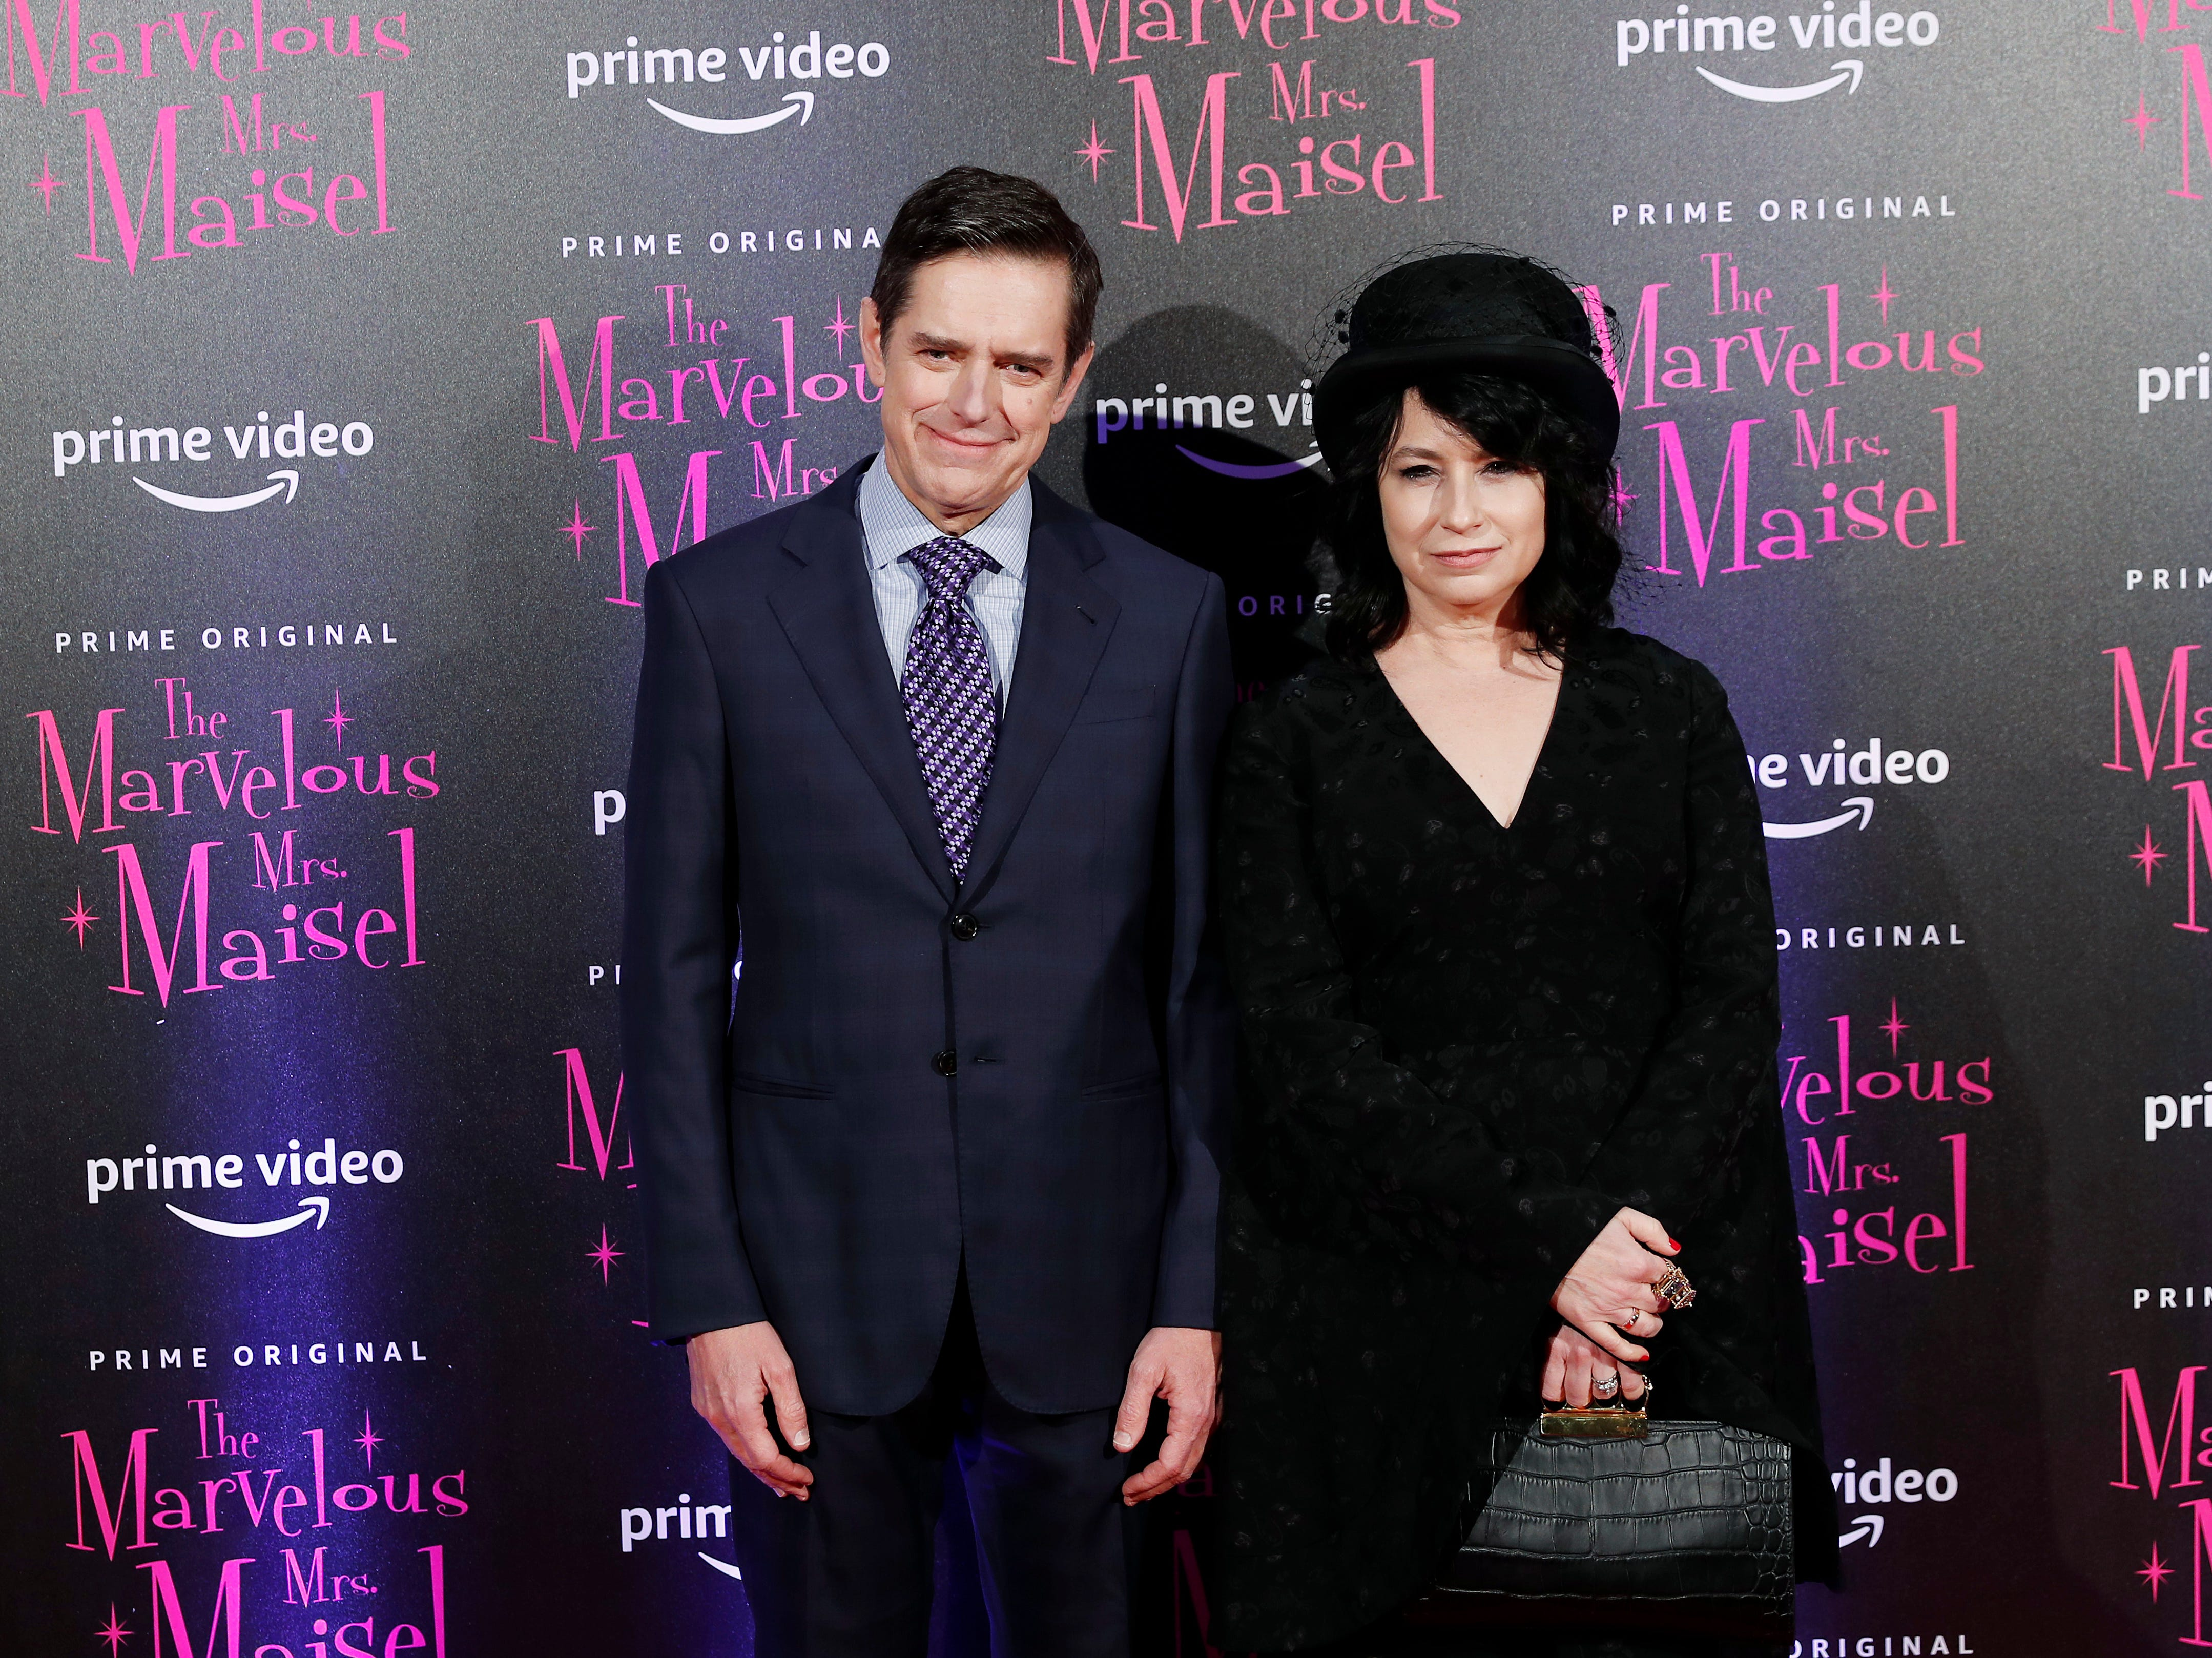 """Amy Sherman Palladino, left, and Dan Palladino pose for photographers at the European Premiere of """"The Marvelous Mrs. Maisel"""" season 2, in Milan, Italy, Monday, Dec. 3, 2018."""